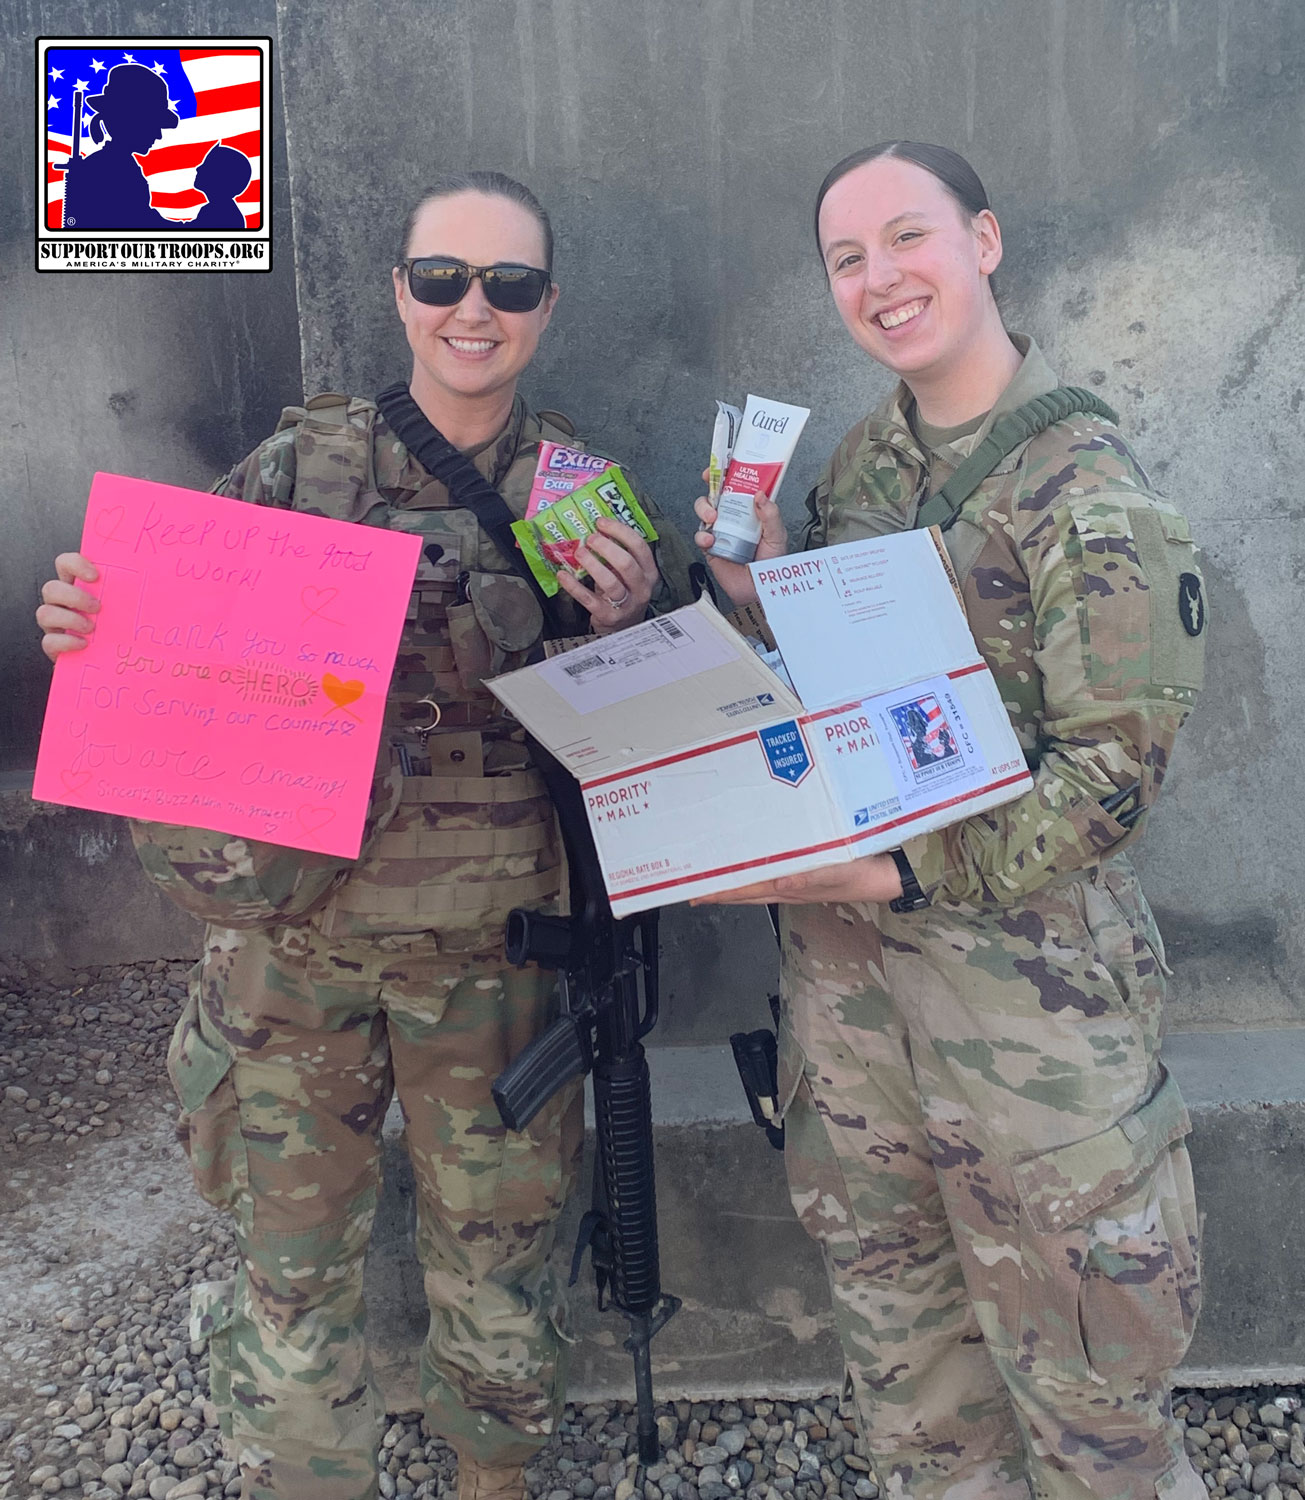 LOCATION UNDISCLOSED, April 4, 2020-Received this care package today (I'm the one in the left) and I got to share it with one of my battle buddies!  Thank you so much this box was absolutely perfect! God Bless you all ~~ SPC Meghan [  ]